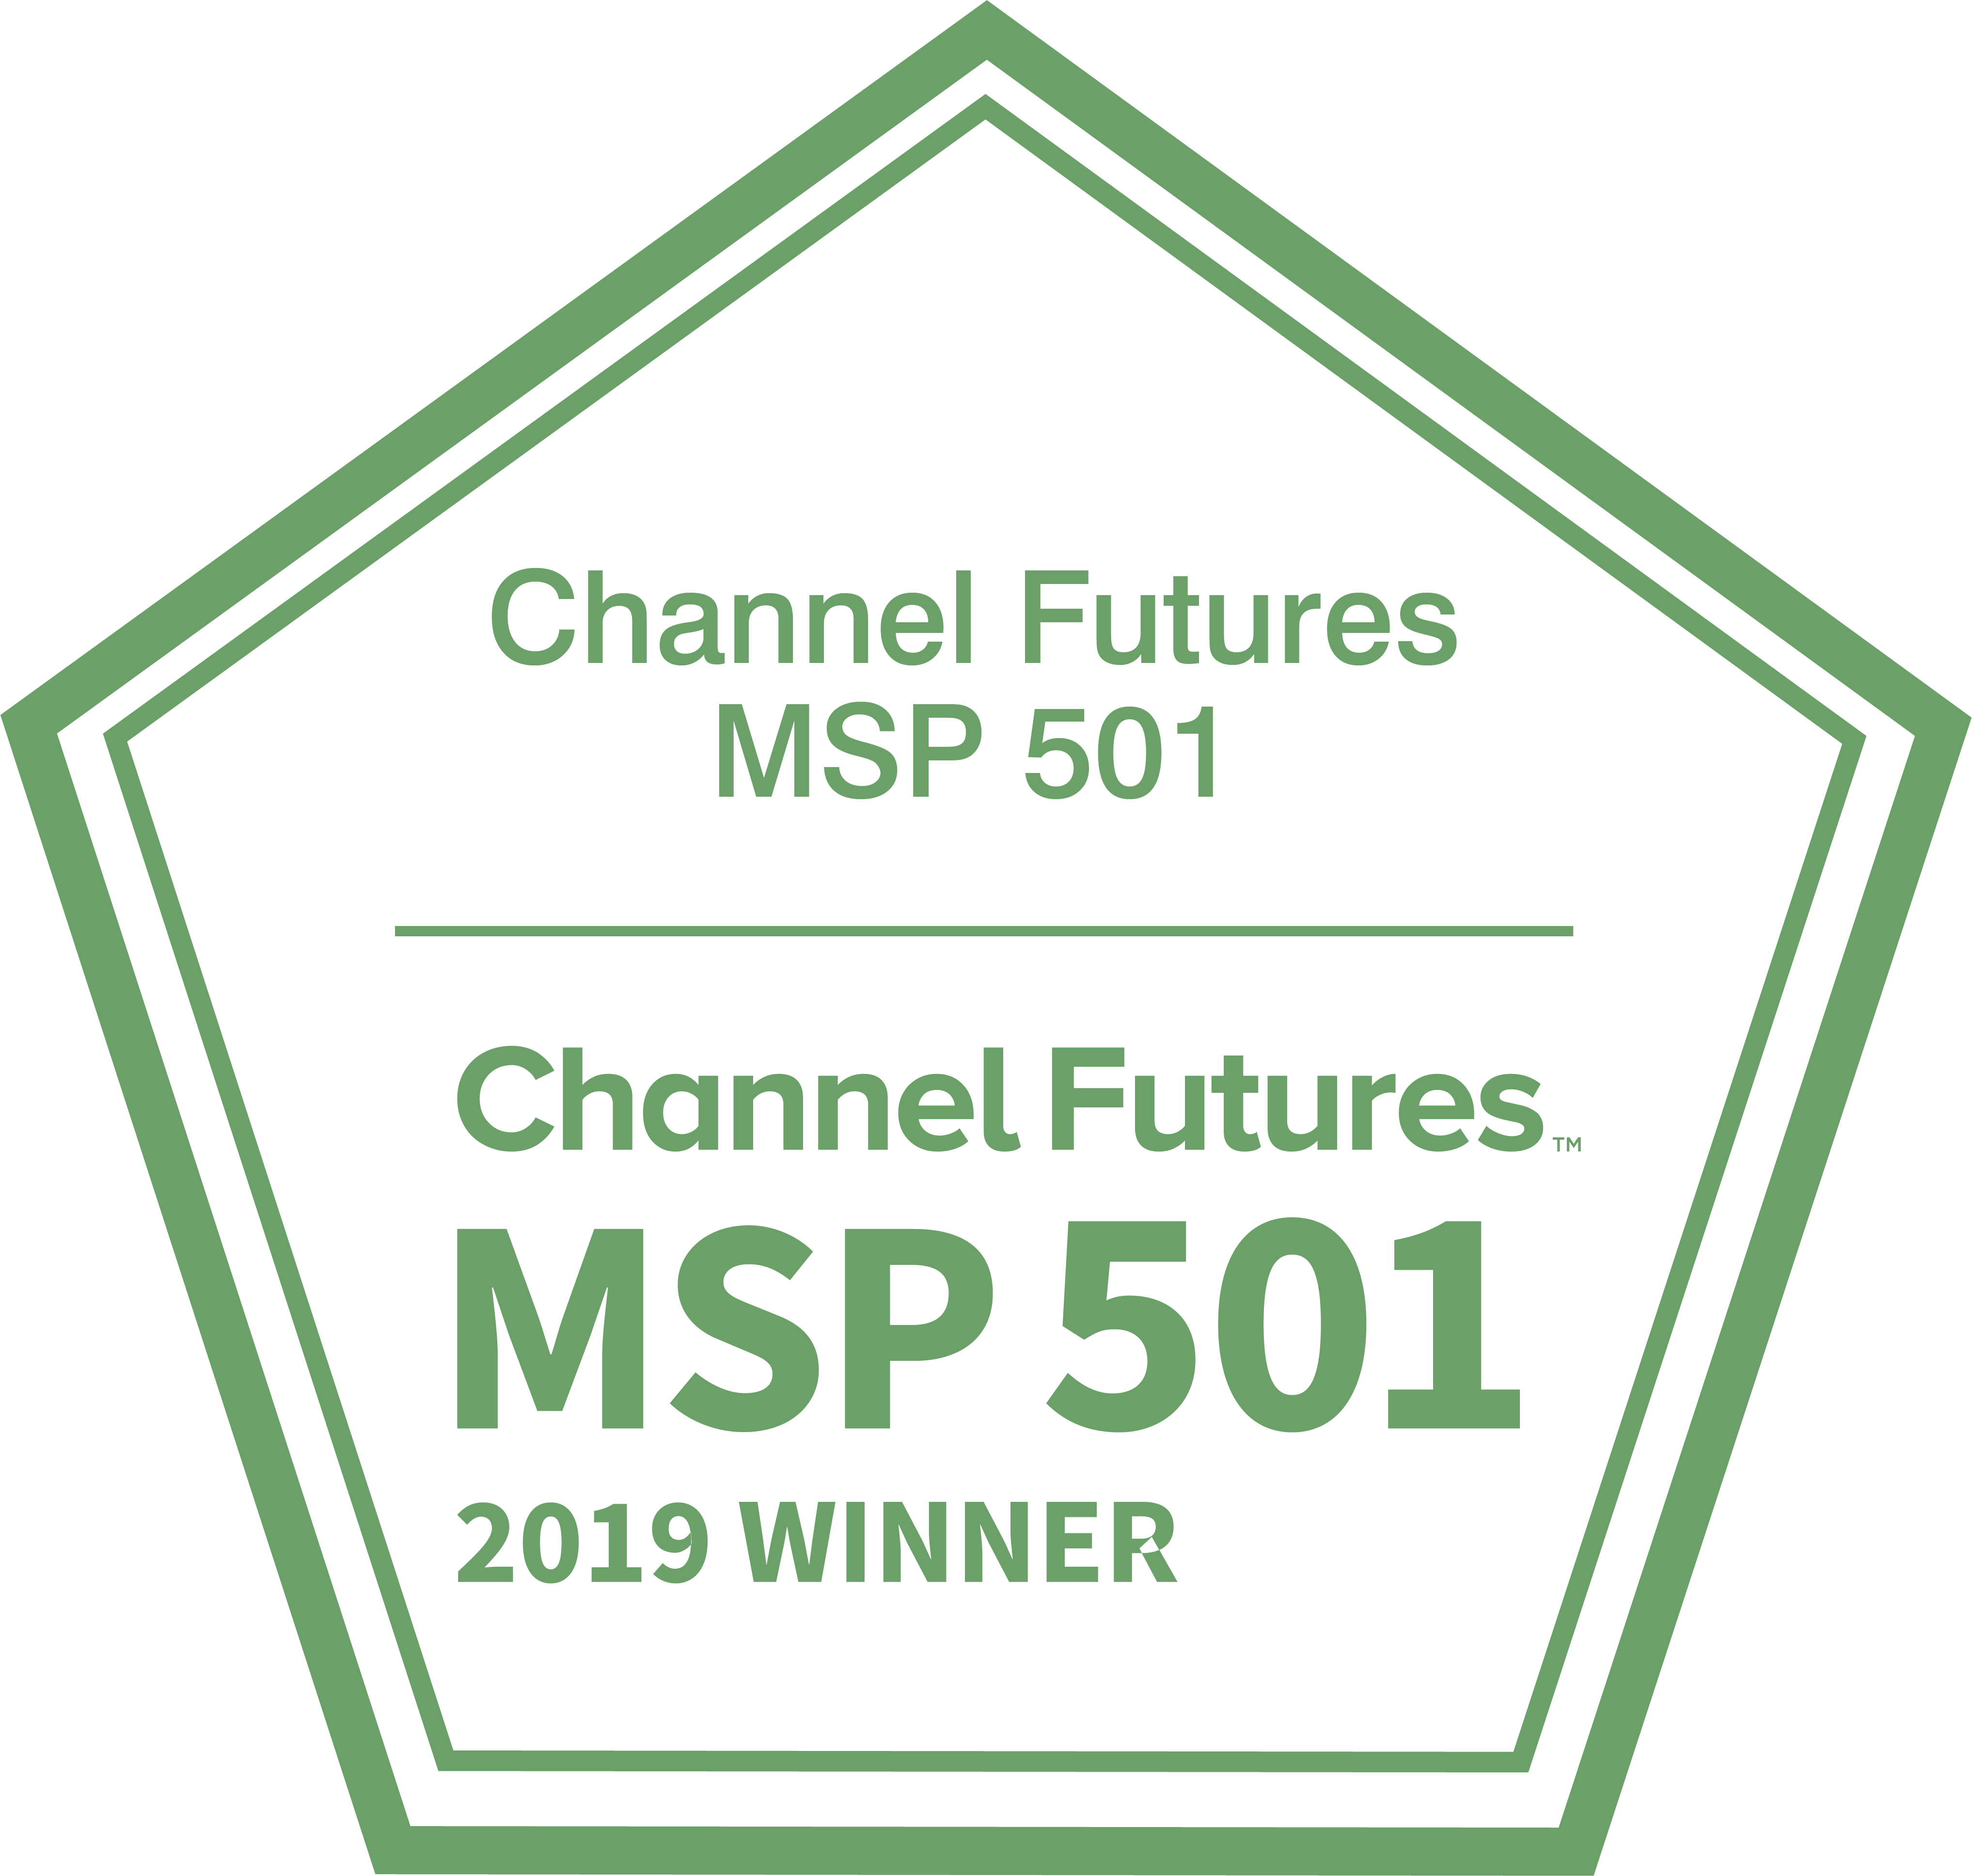 Channel-Futures-MSP501-2019